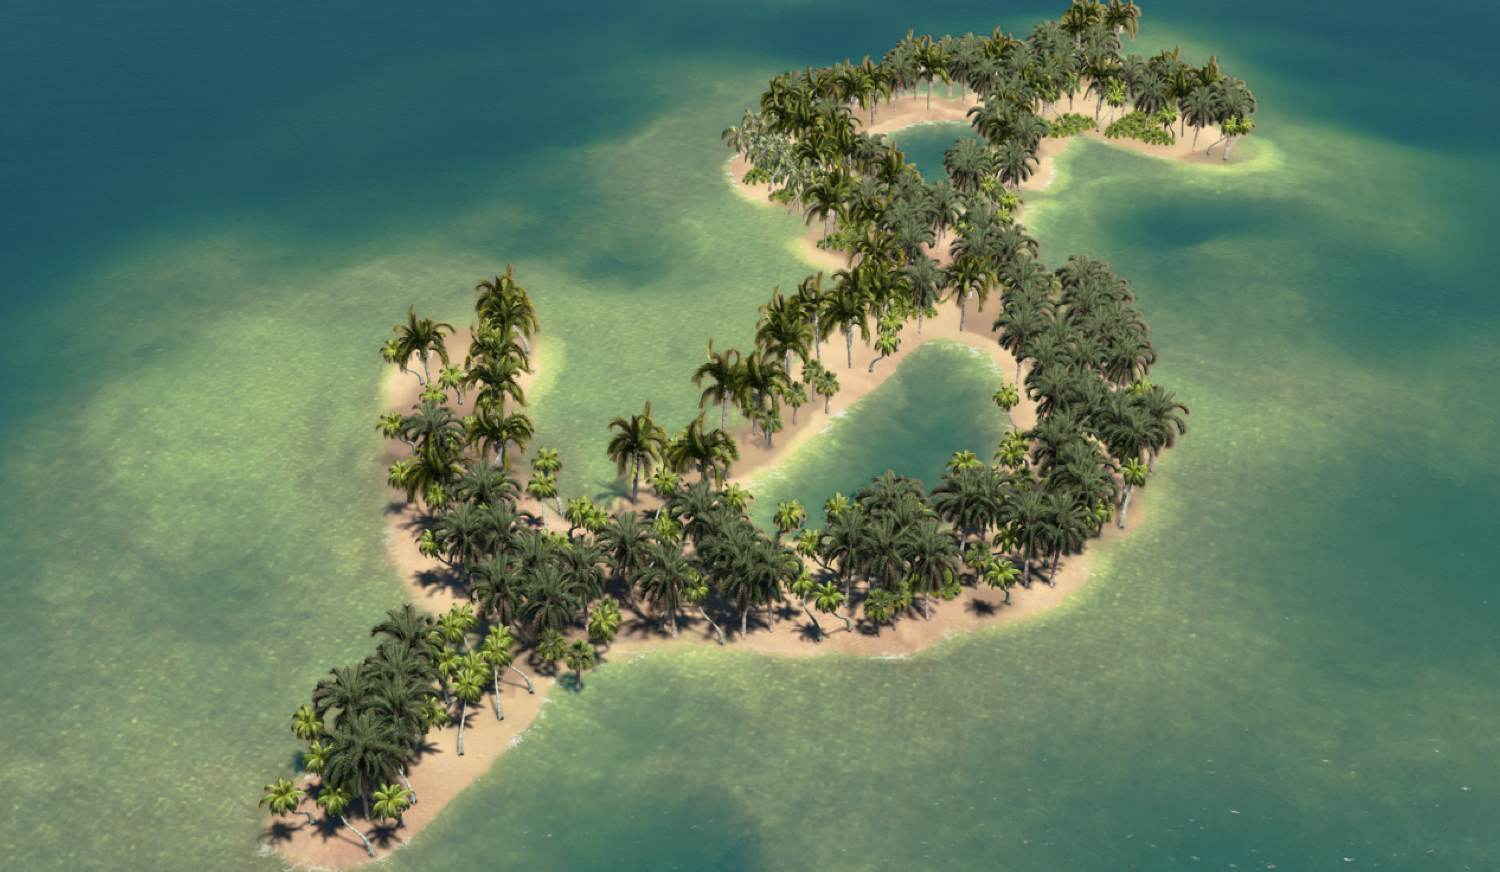 shu-dollar shaped island-asset tracing-offshore assets-96603859-happy_hour